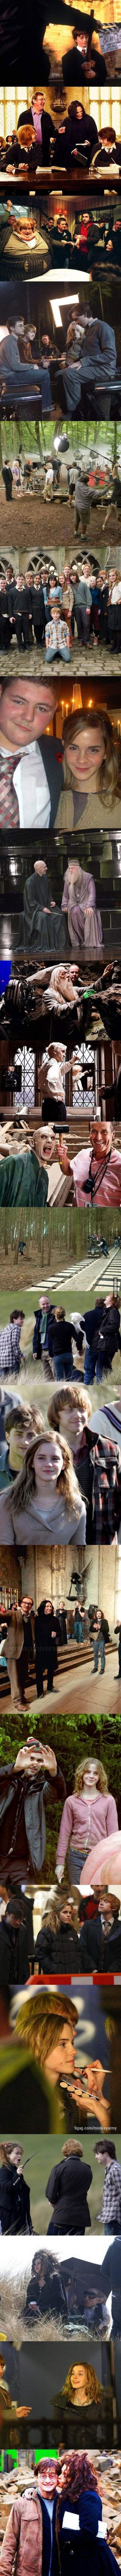 Behind the scenes on 9GAG